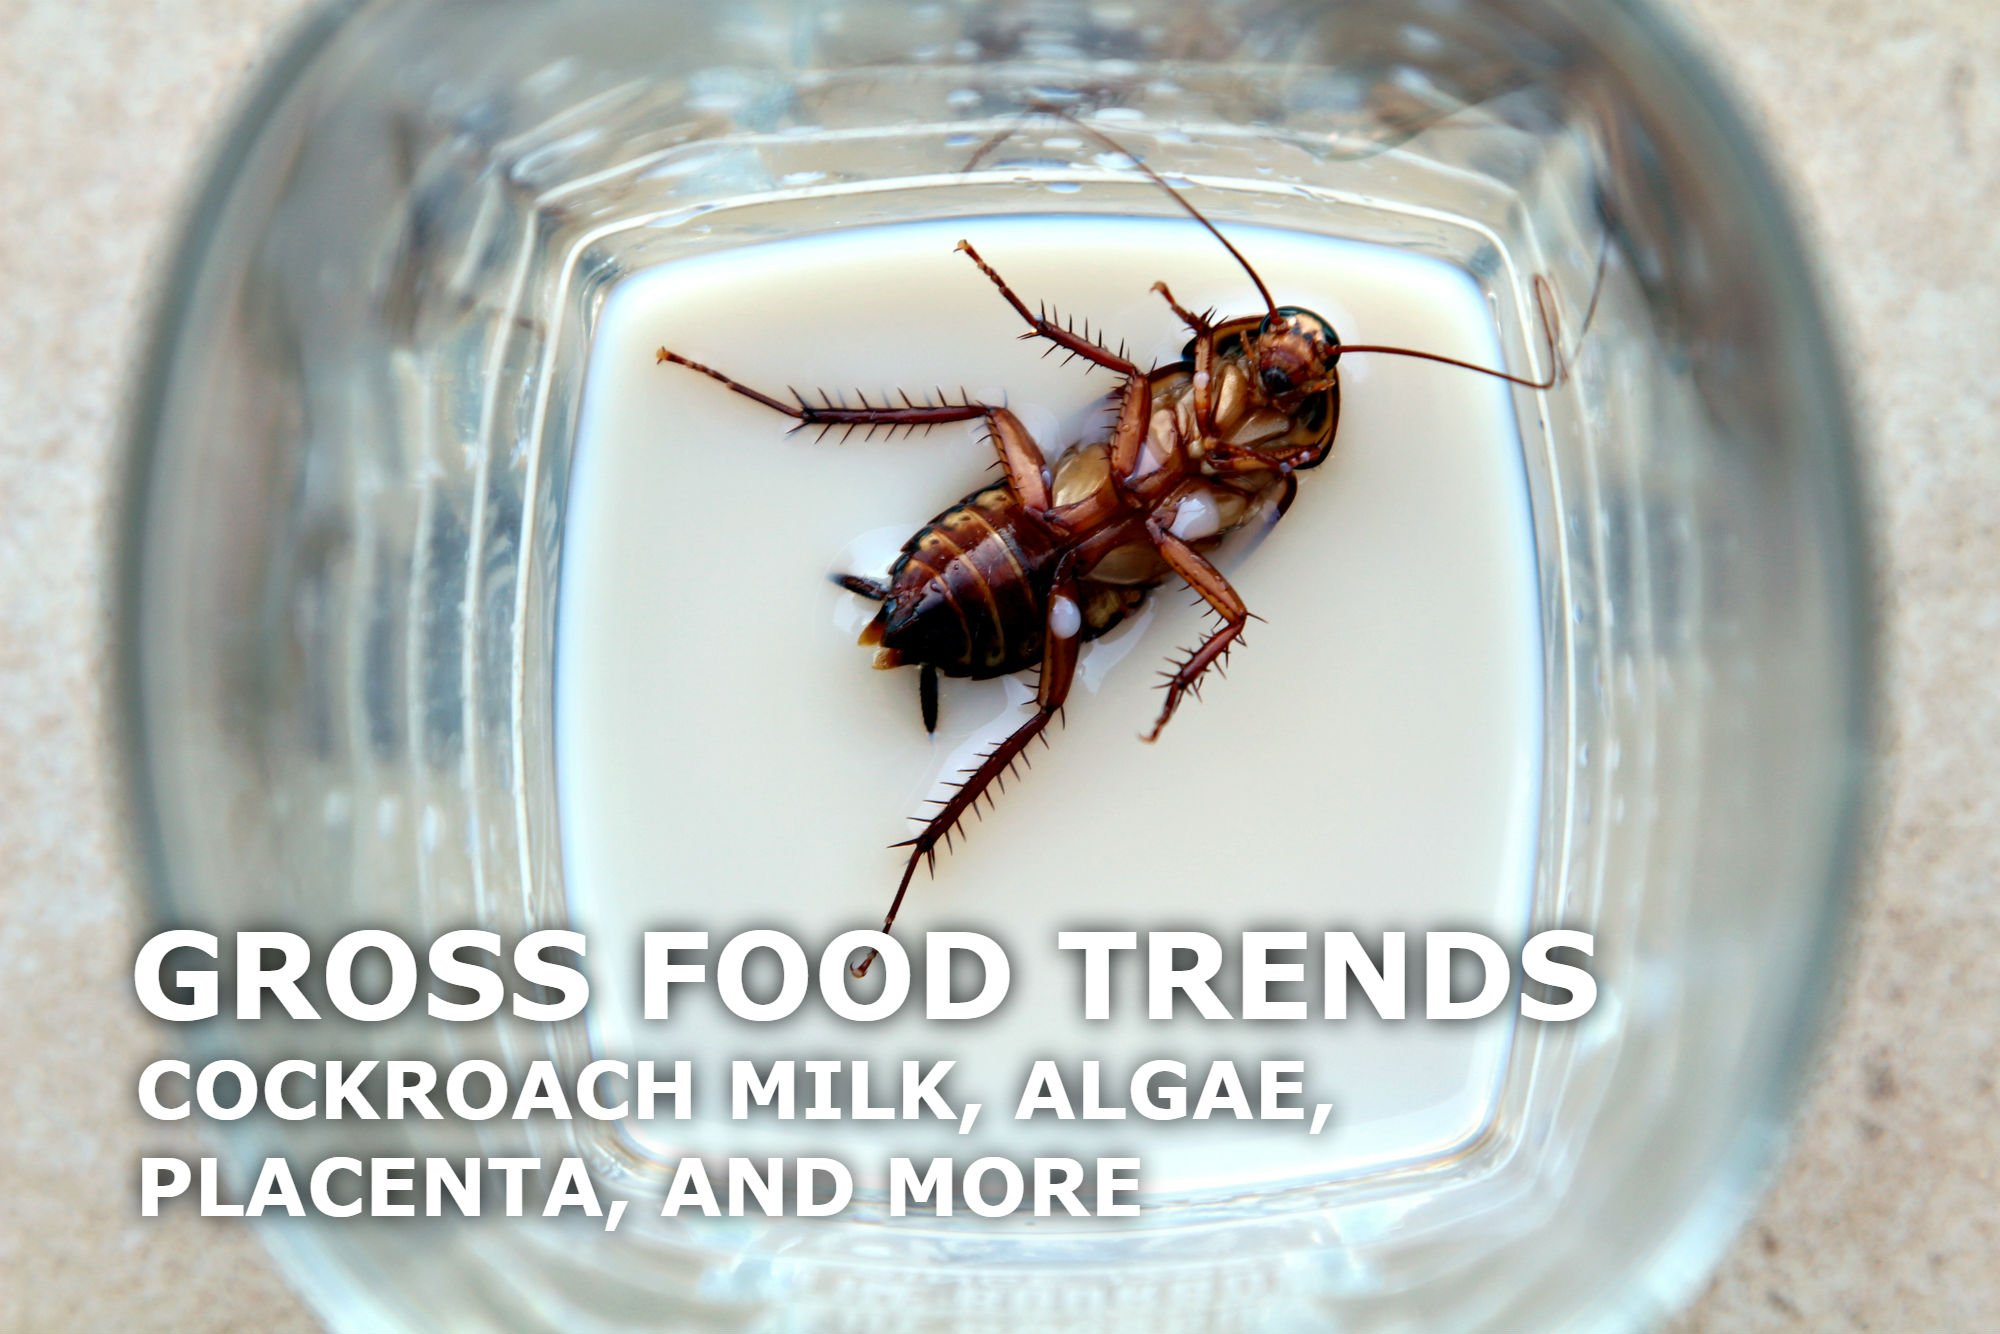 5 GROSS FOOD TRENDS: COCKROACH MILK, ALGAE, INSECT COCKTAILS, AND MORE